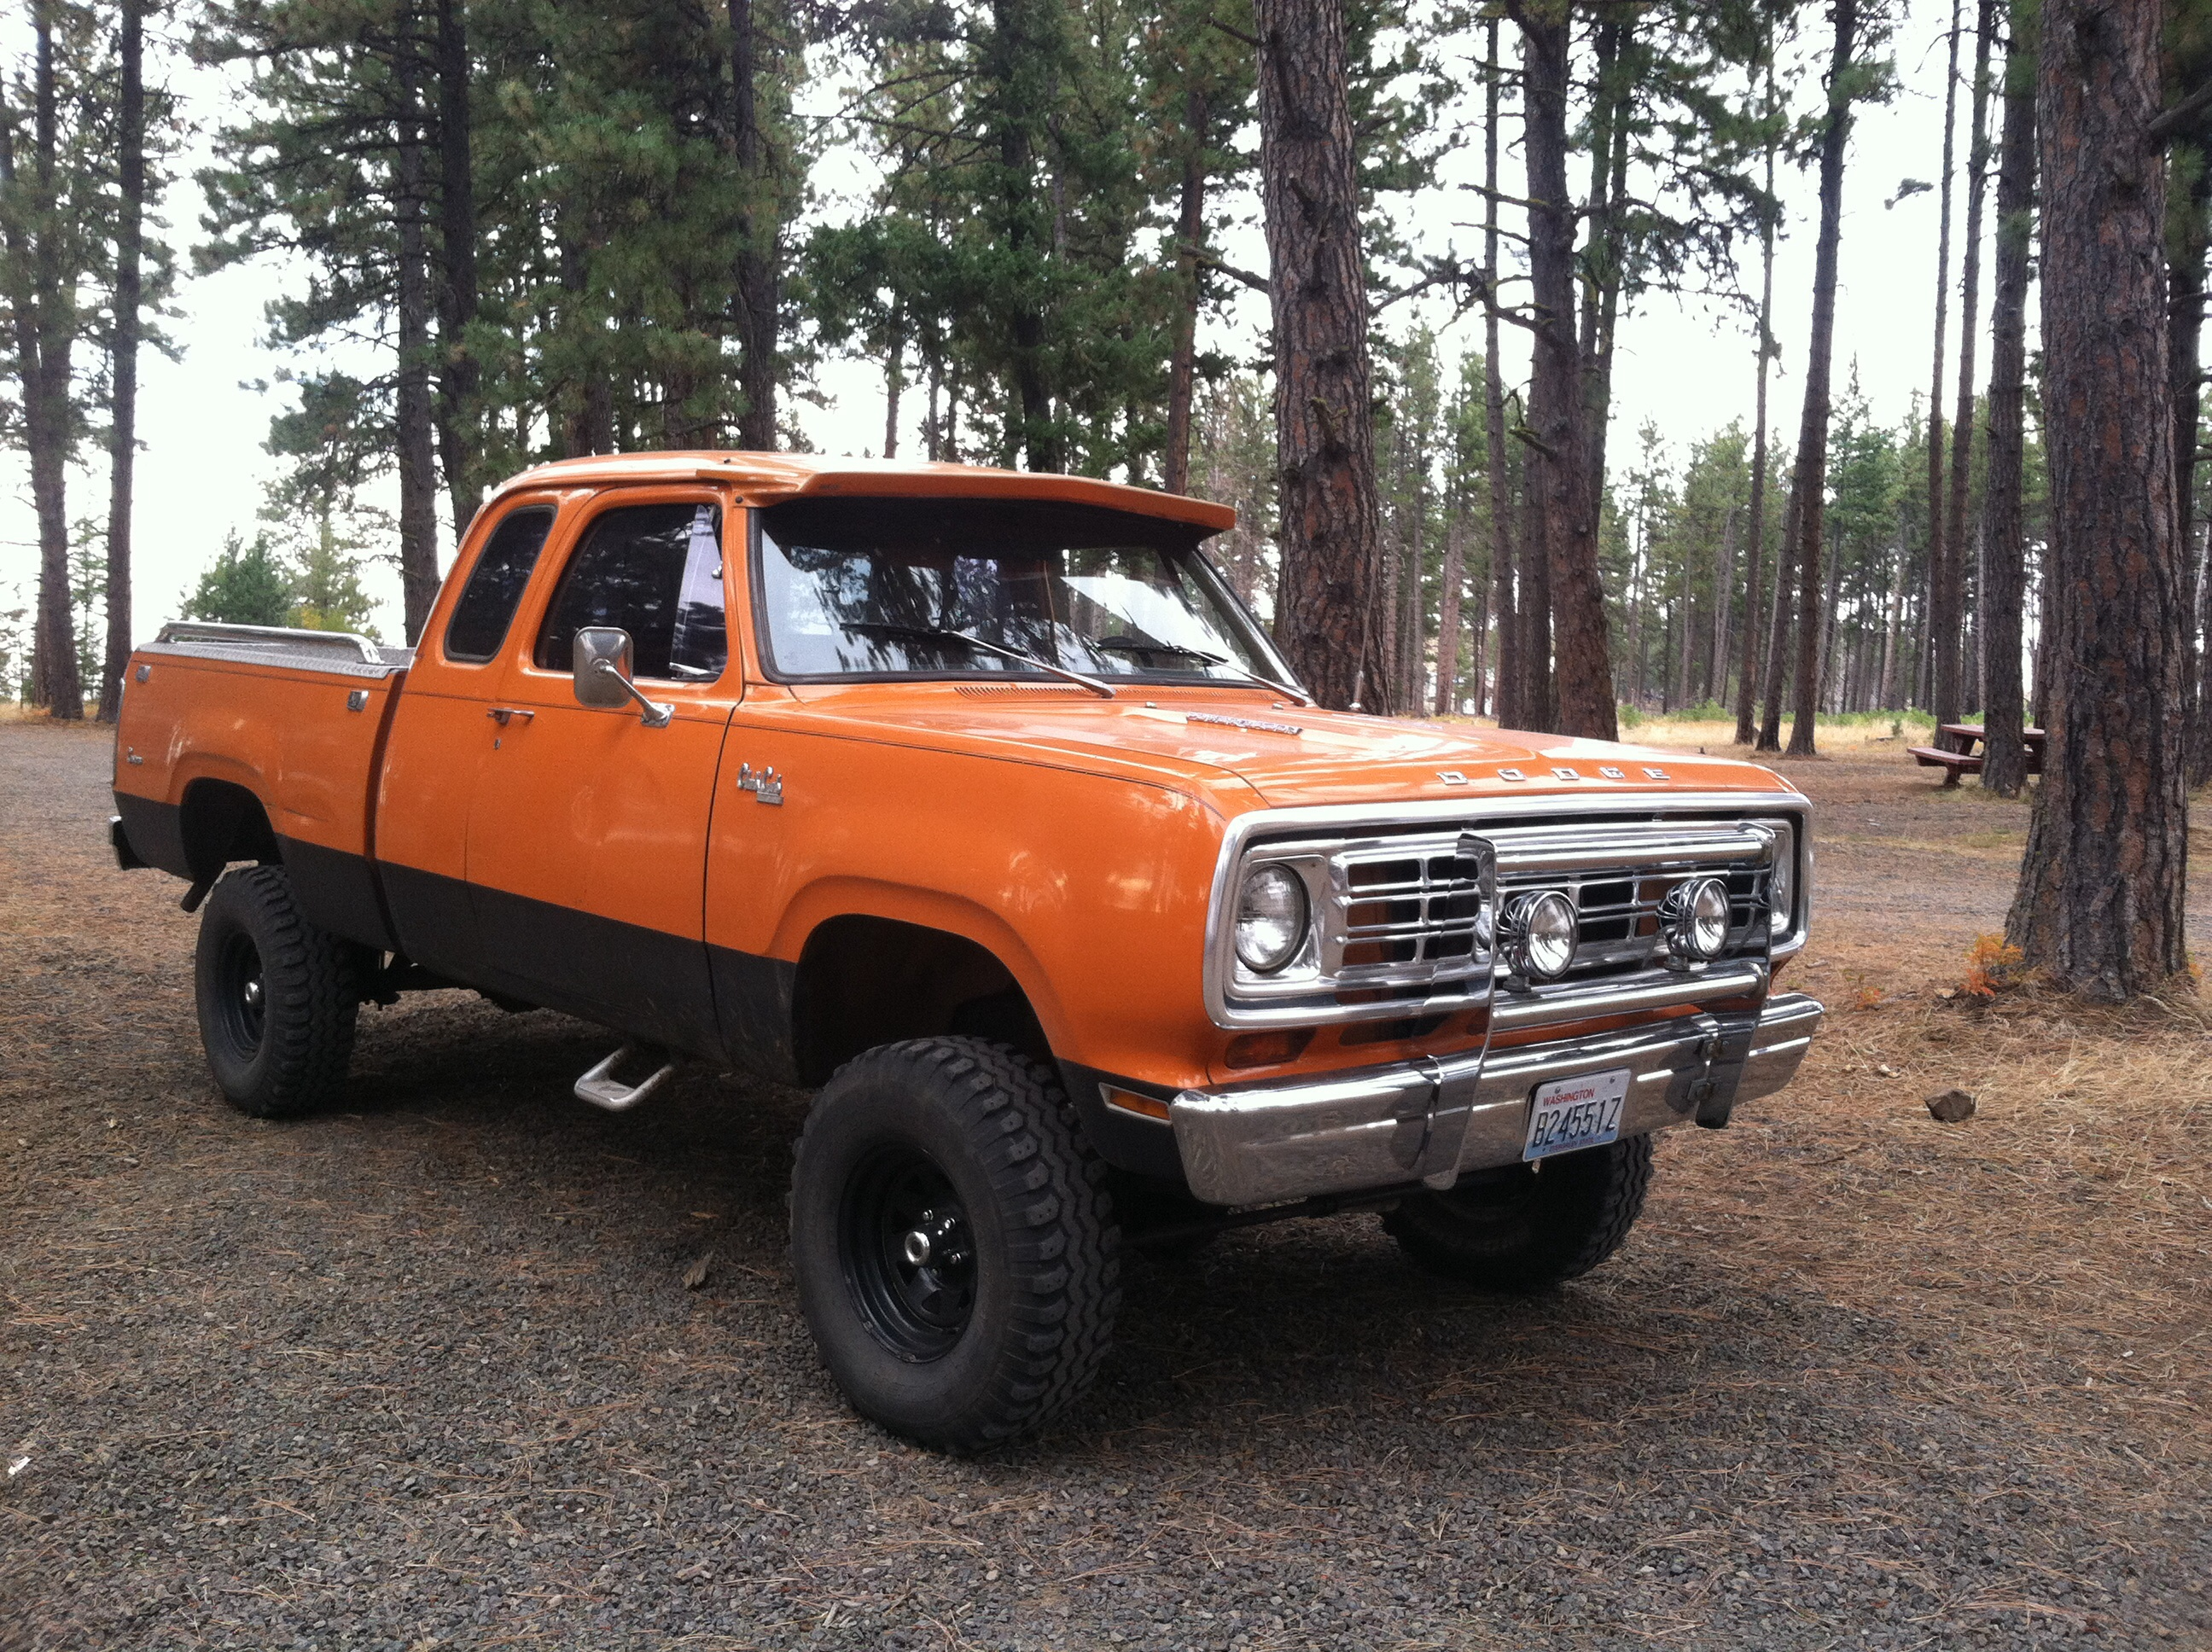 Craigslist Orange Cars And Trucks >> 1975 Dodge Power Wagon For Sale Craigslist | Autos Post